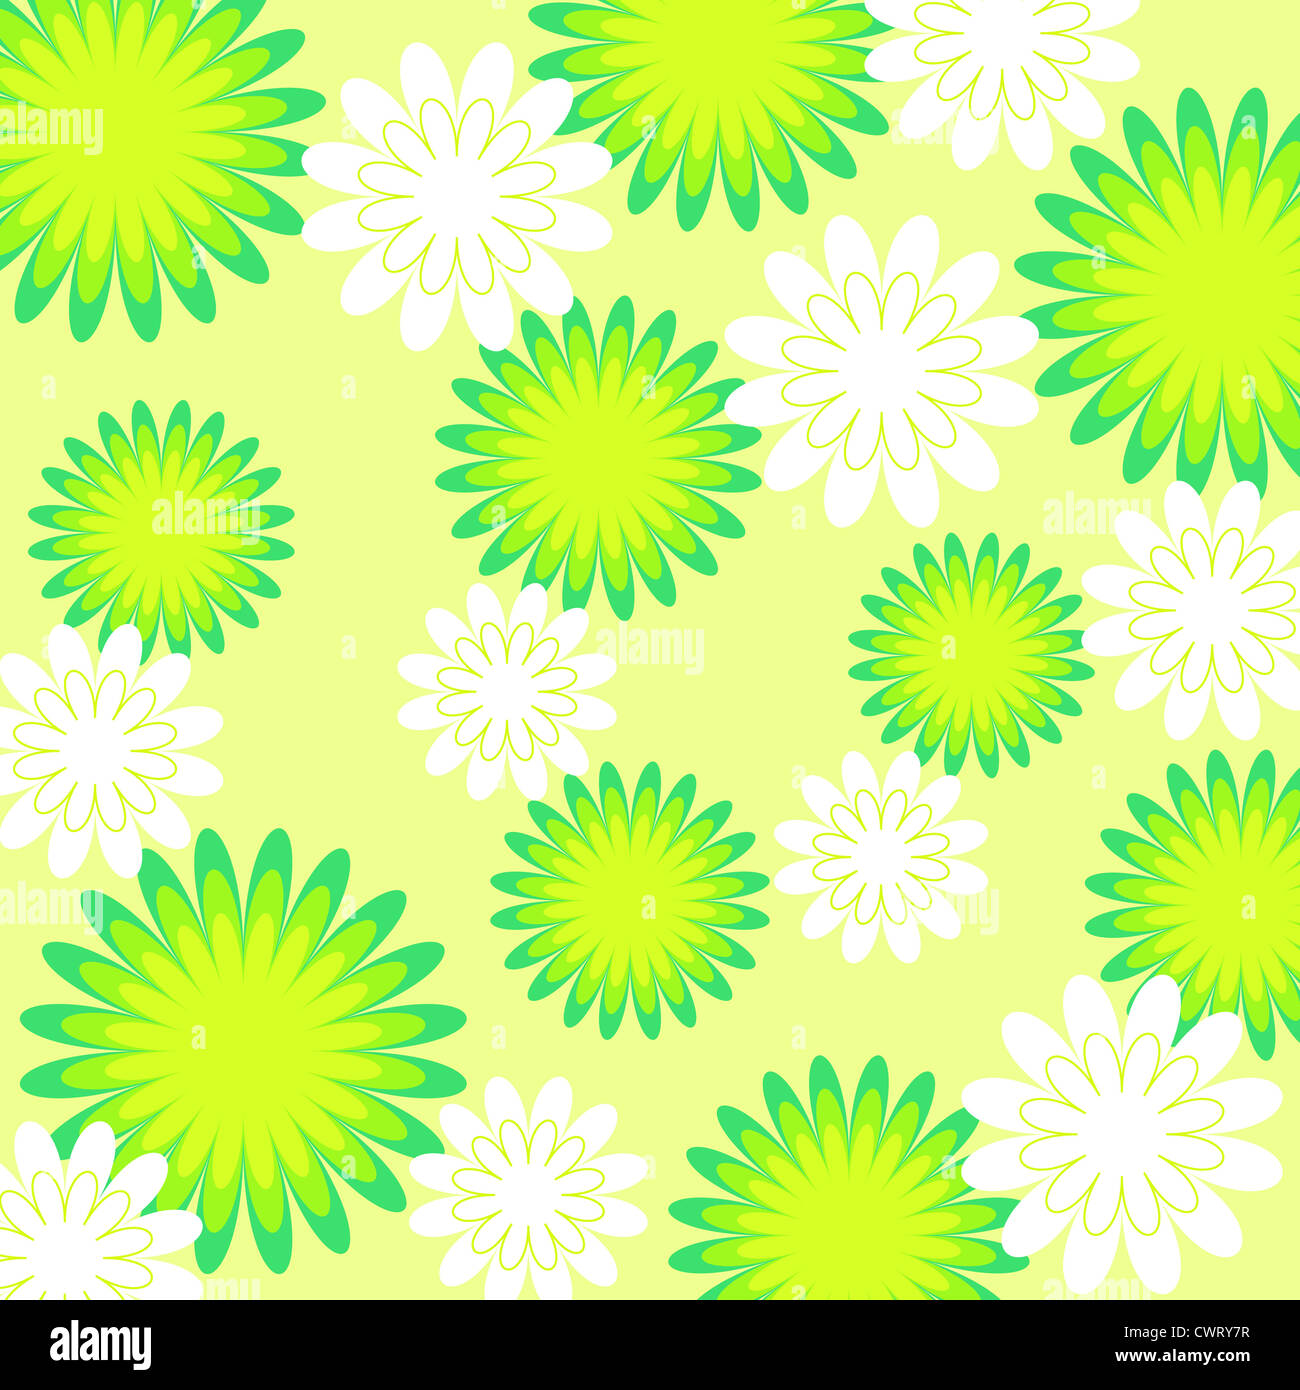 Seamless colorful floral pattern in bright colors Stock Photo